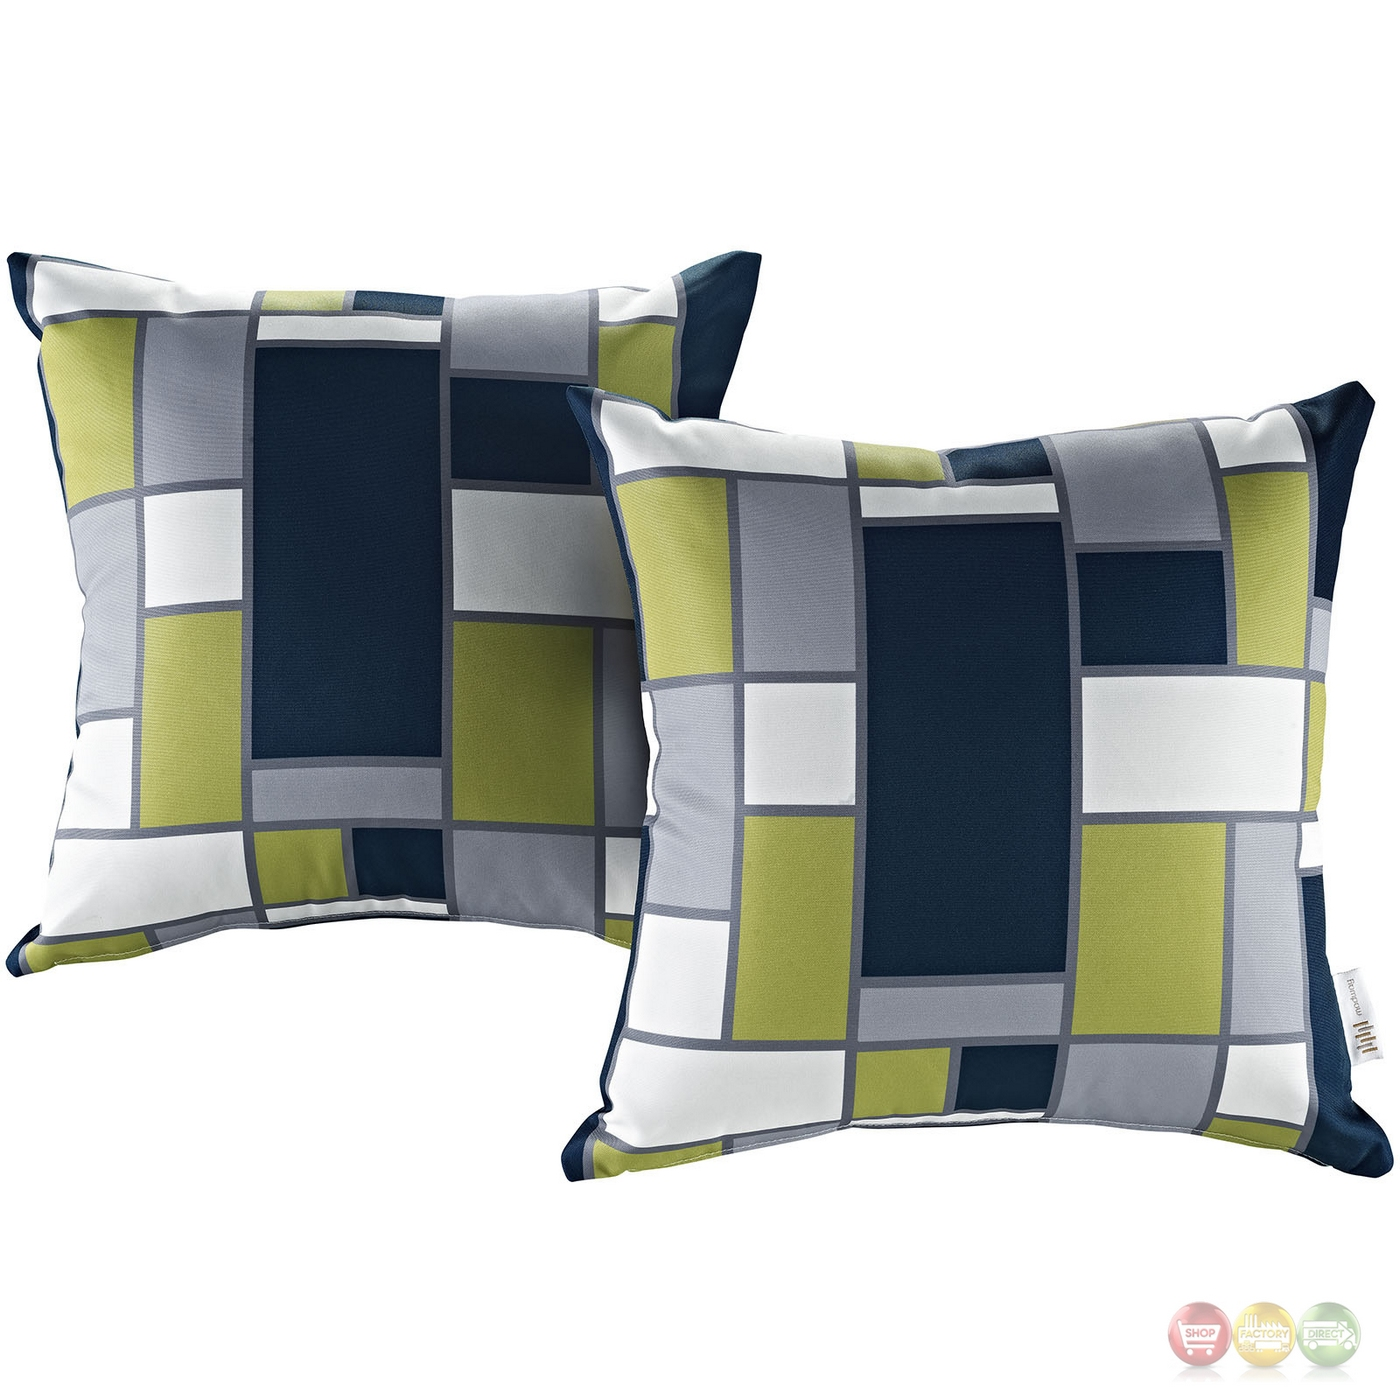 Modern Outdoor Pillow : Modway Modern Outdoor Patio Pillow W/patterned Weather Resistant Fabric, Rectangle